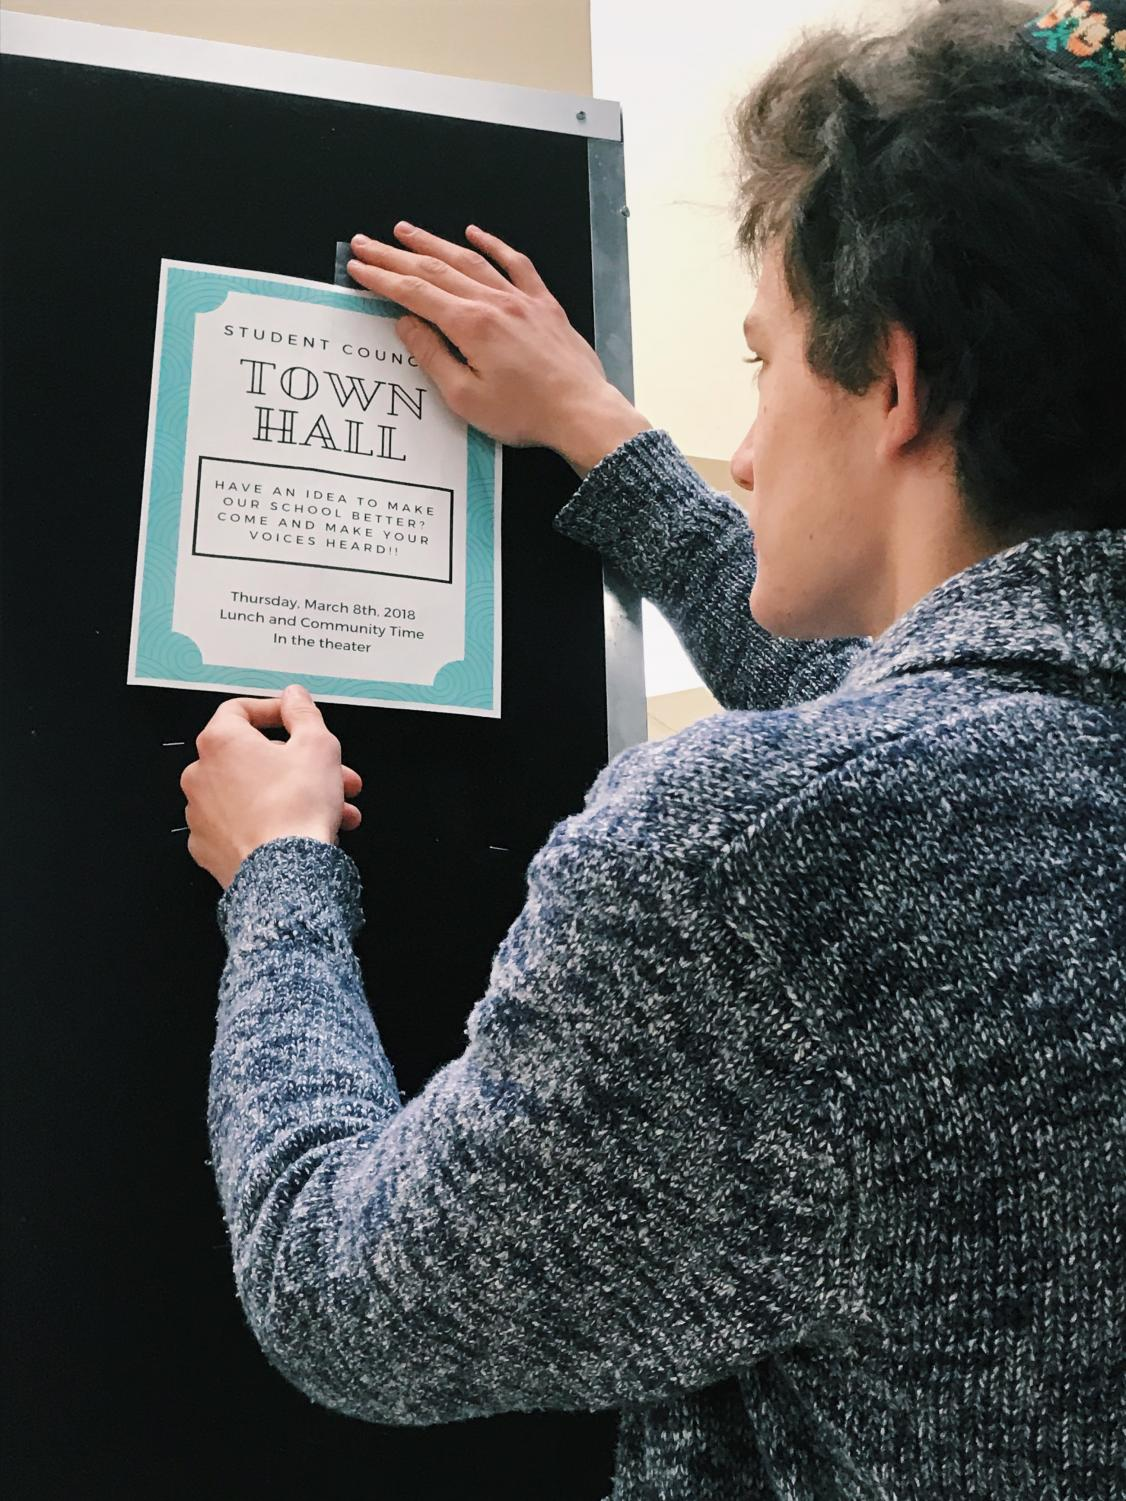 Sophomore class representative Matthew Wieseltier hangs town hall fliers to promote the event.